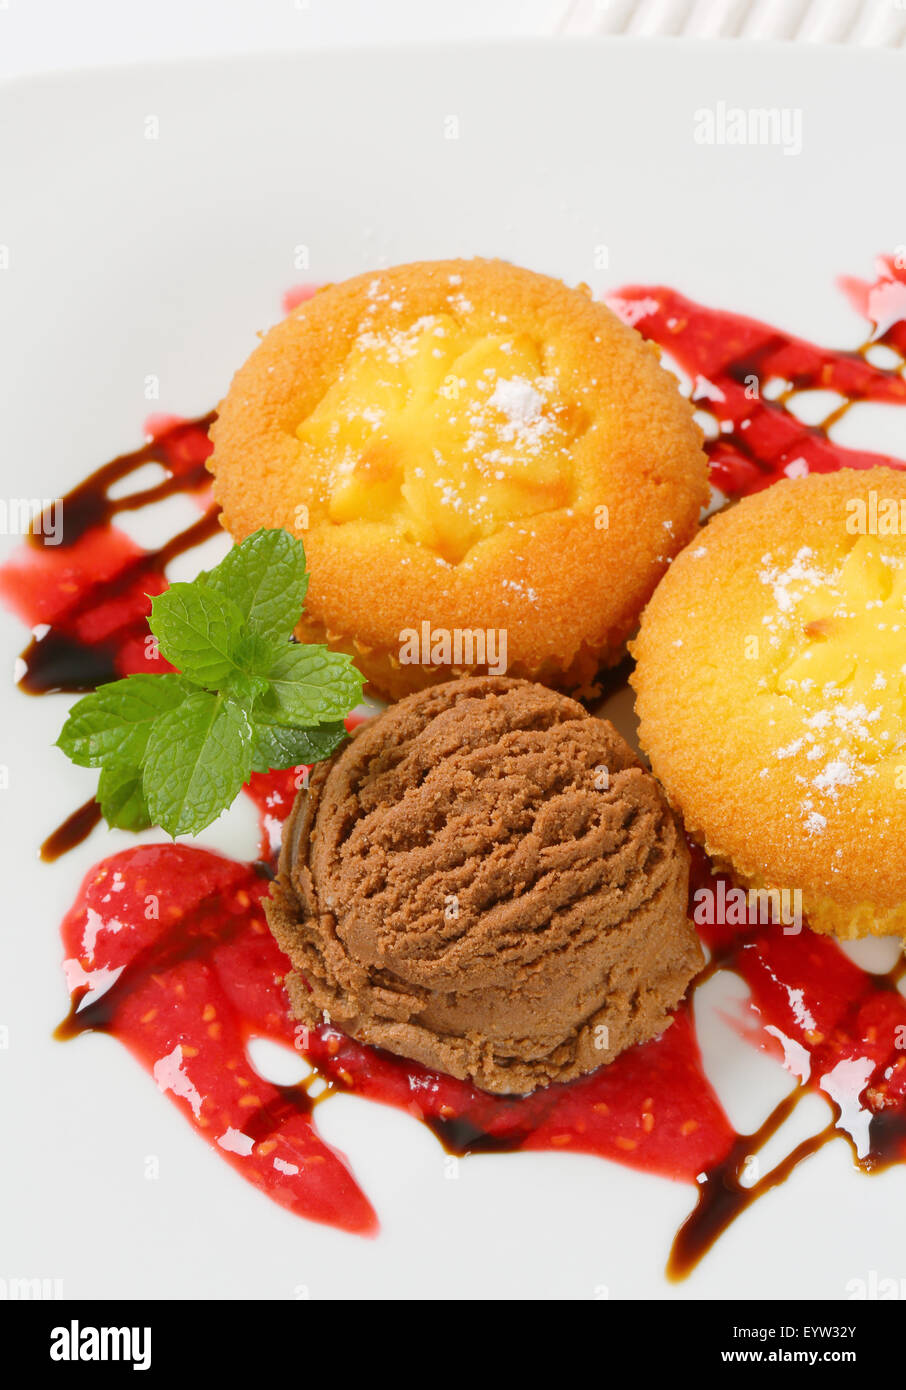 Pudding filled cupcakes and scoop of ice cream - Stock Image